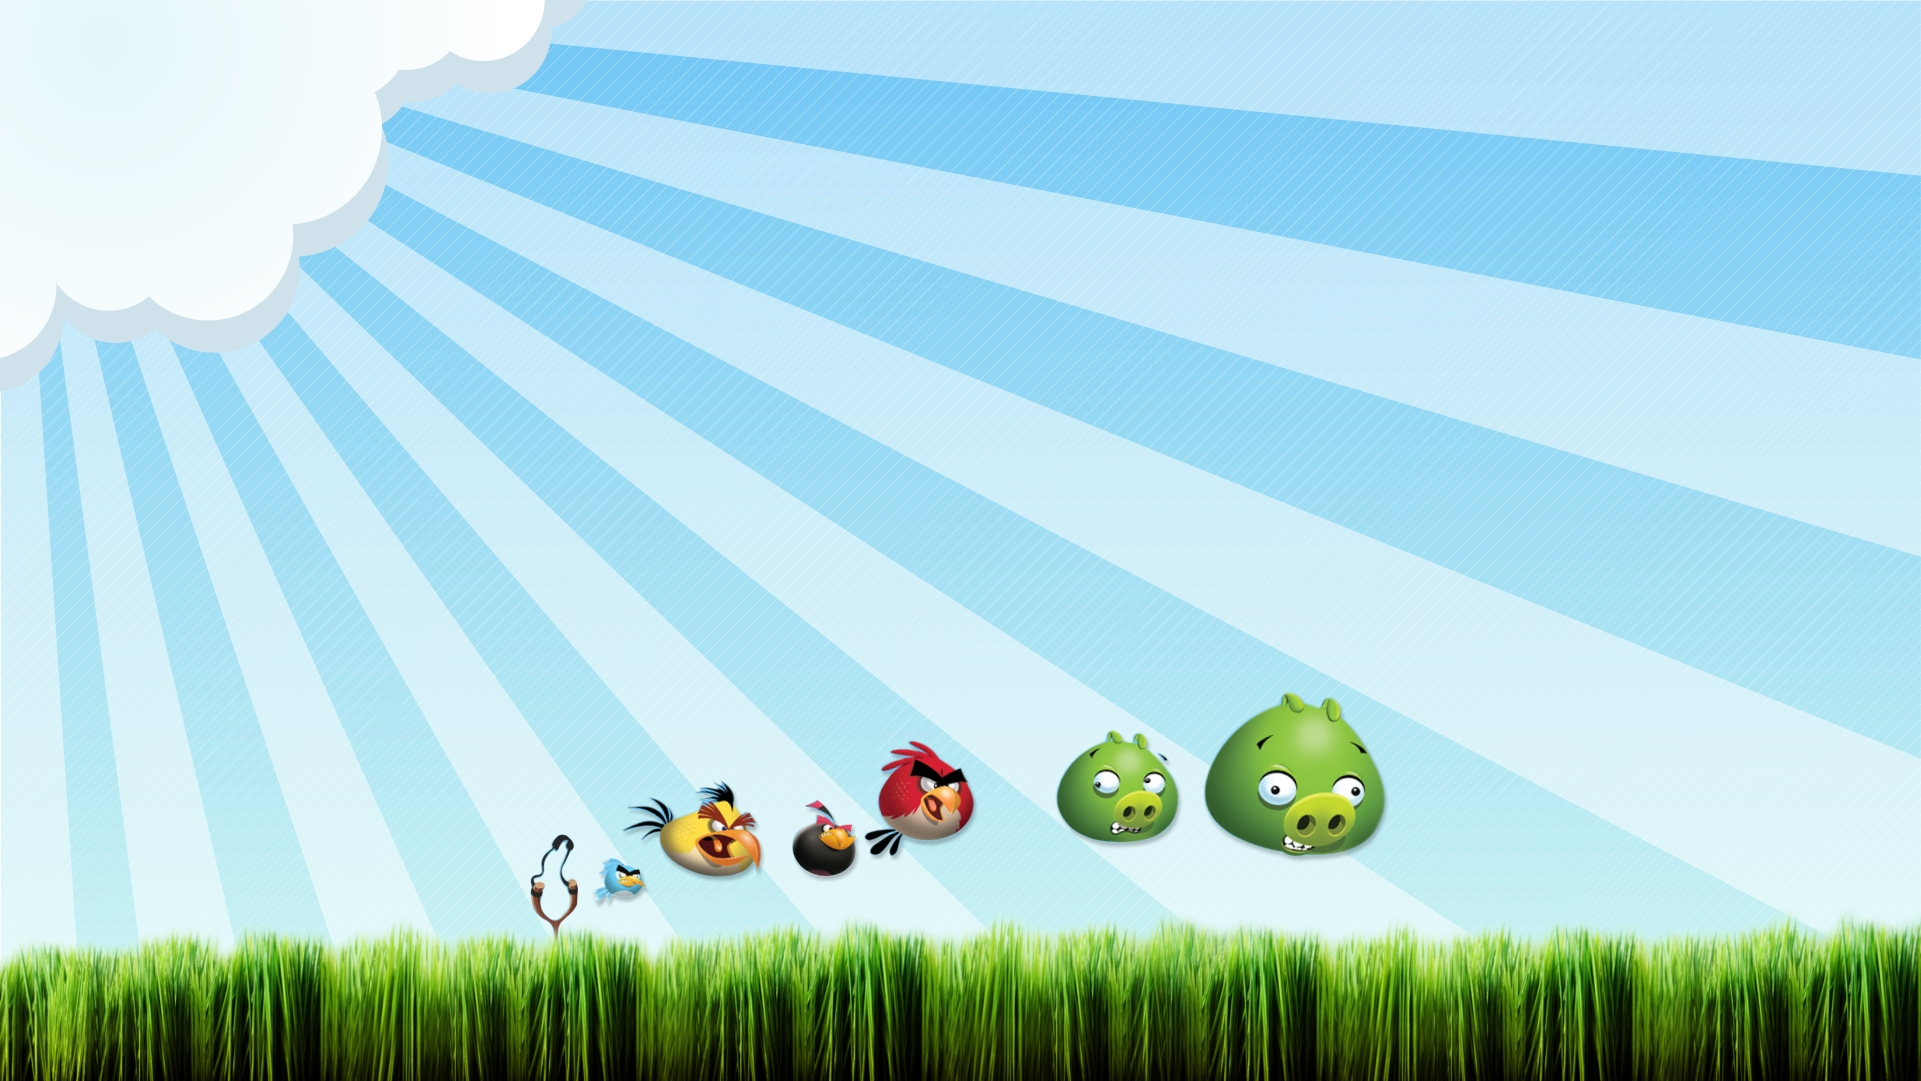 Wallpapers Angry Birds em HD